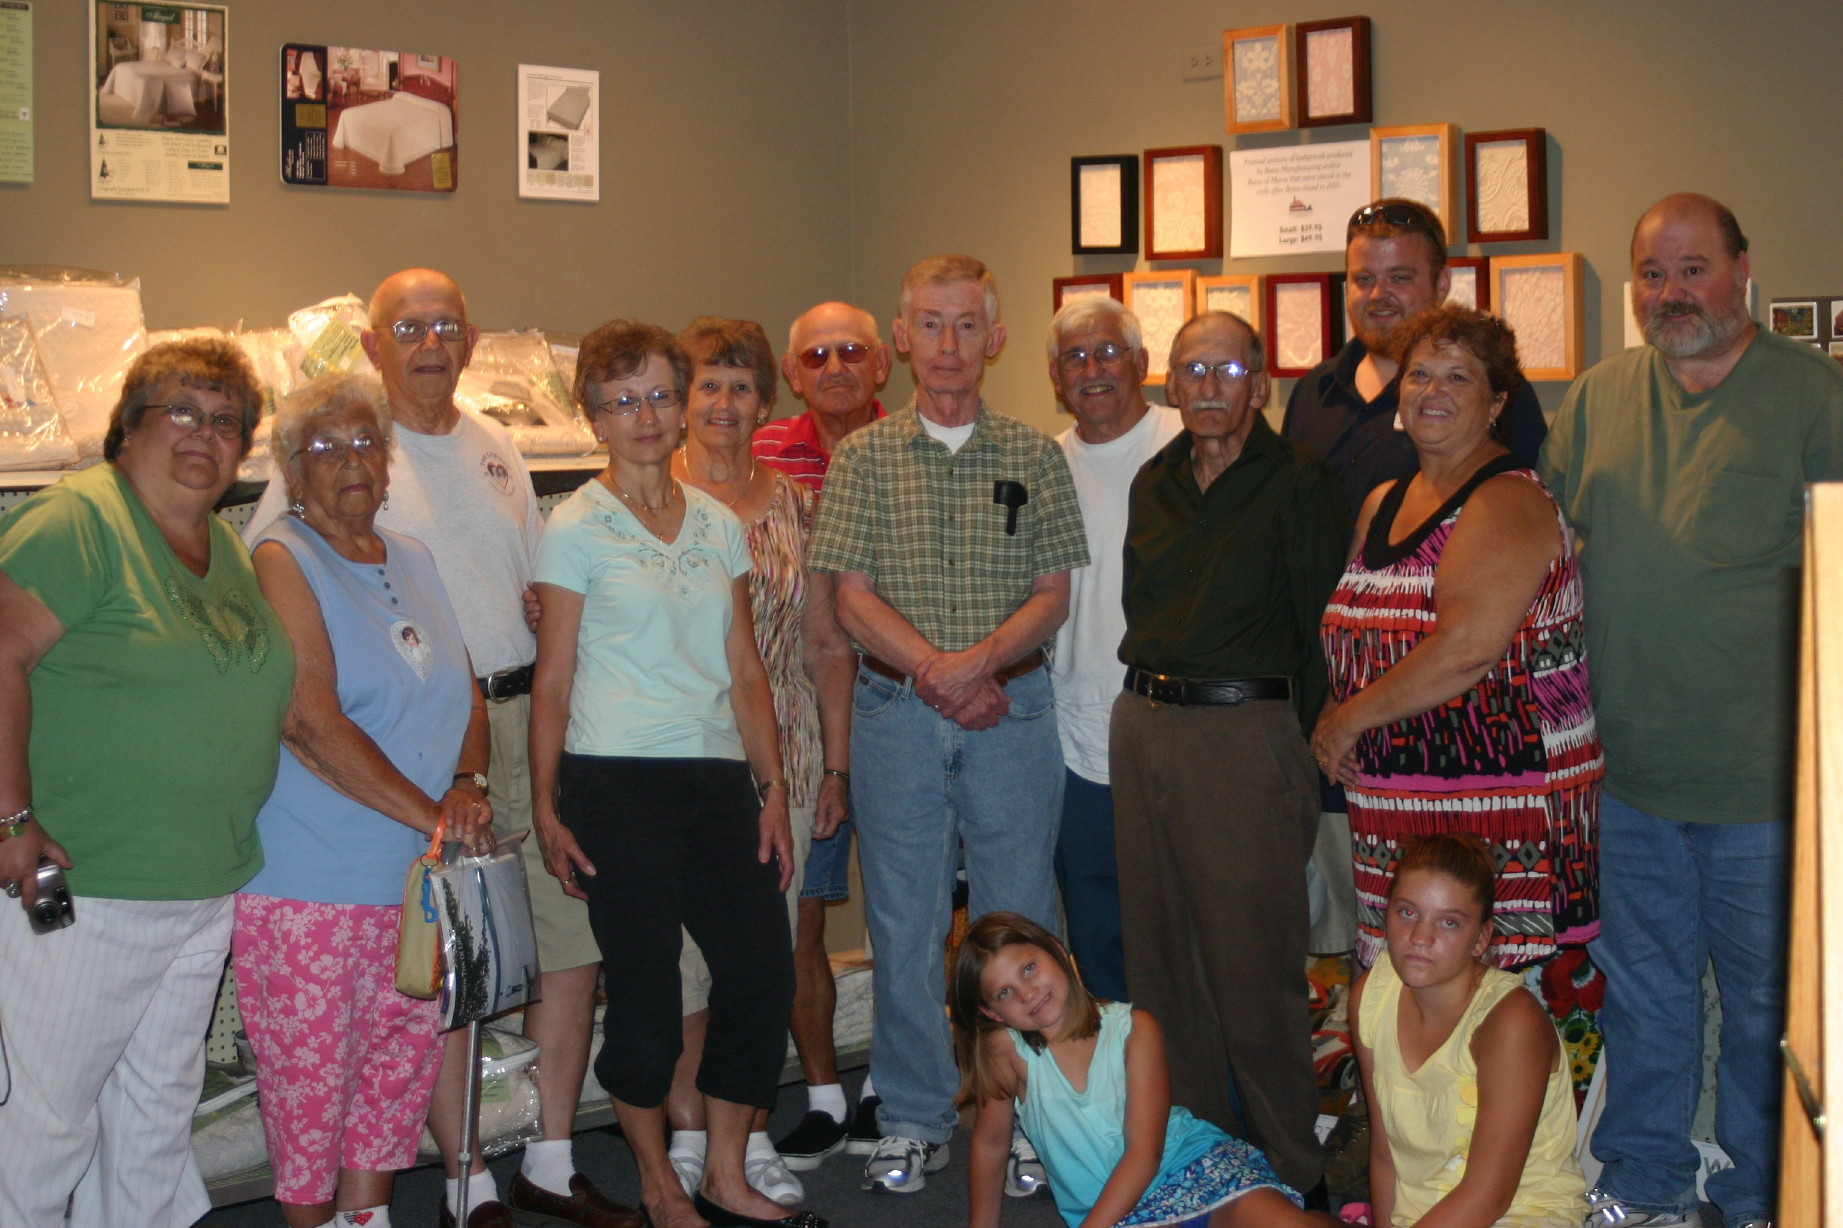 Photo taken August 19, 2011, at Museum L-A, in Lewiston, Maine.